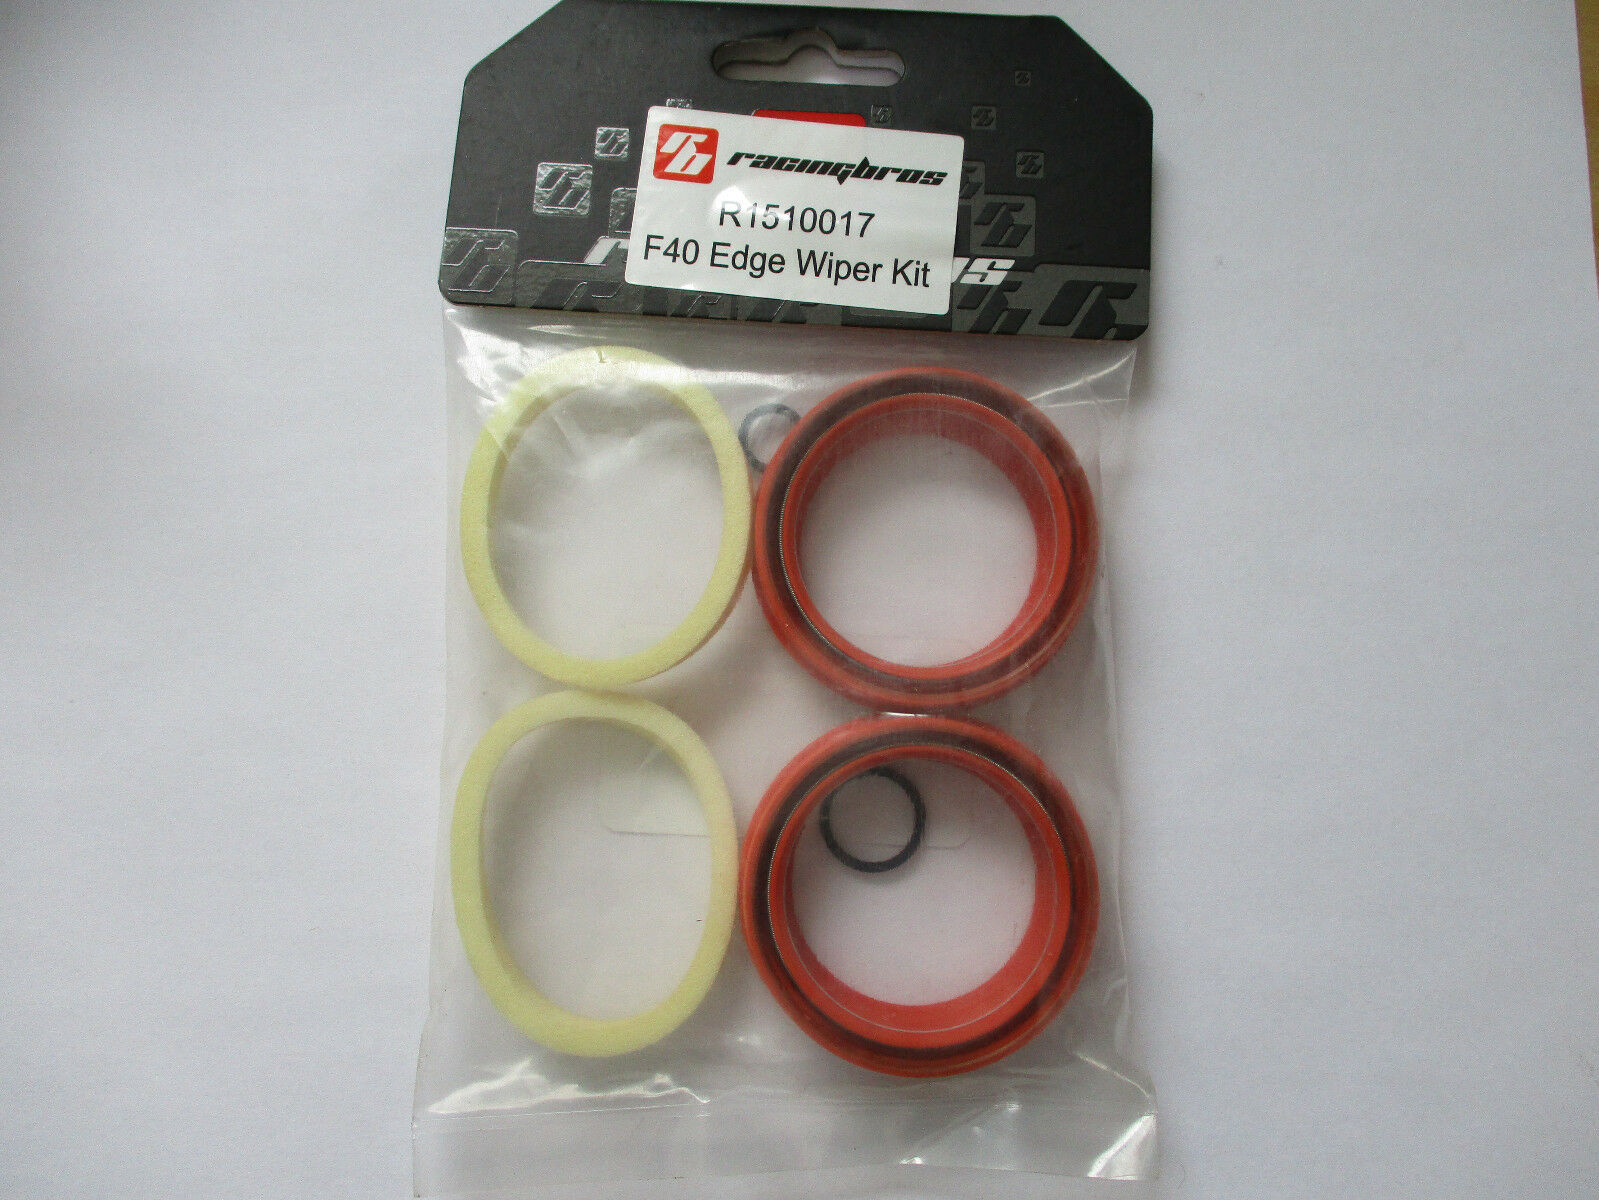 New Racingbros Dust Seal Foam Ring Kit Lycan Edge Wiper Red for FOX Fork 40mm